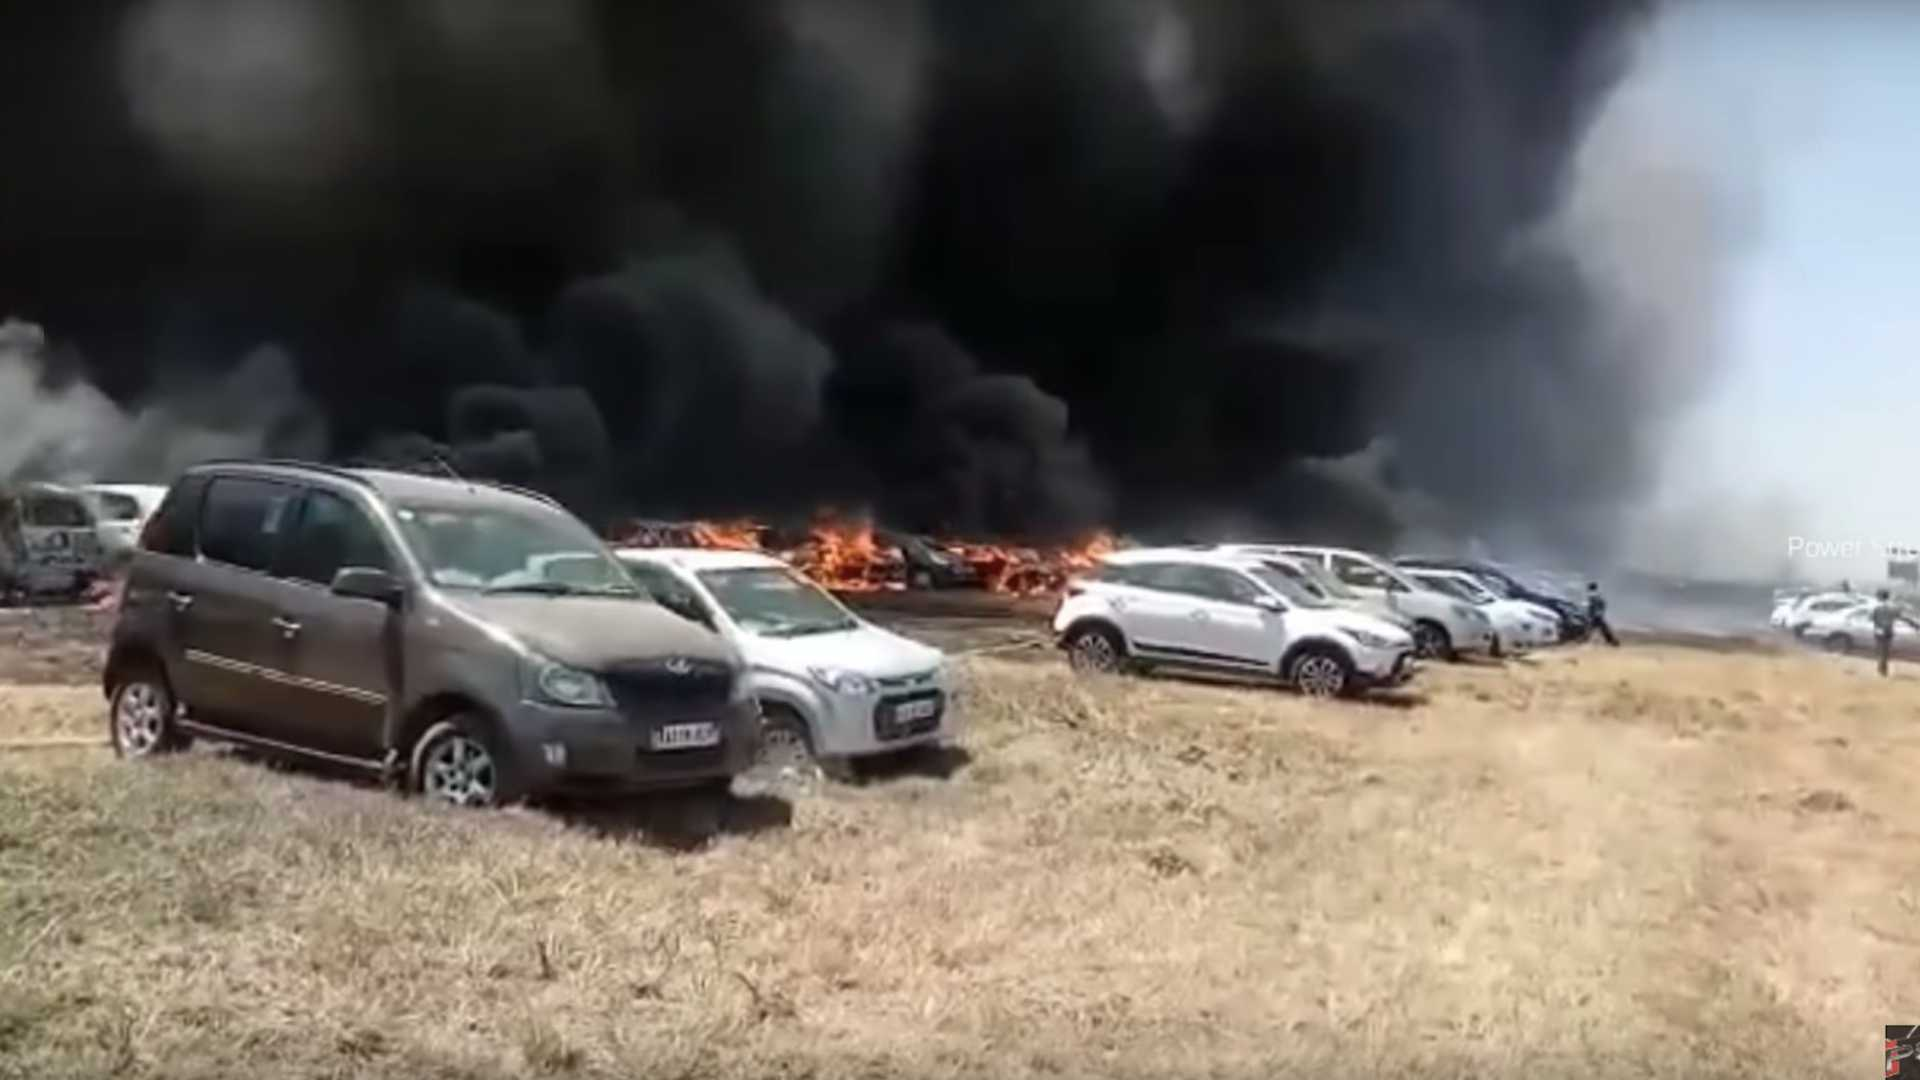 Massive Fire Takes Out More Than 300 Cars In India